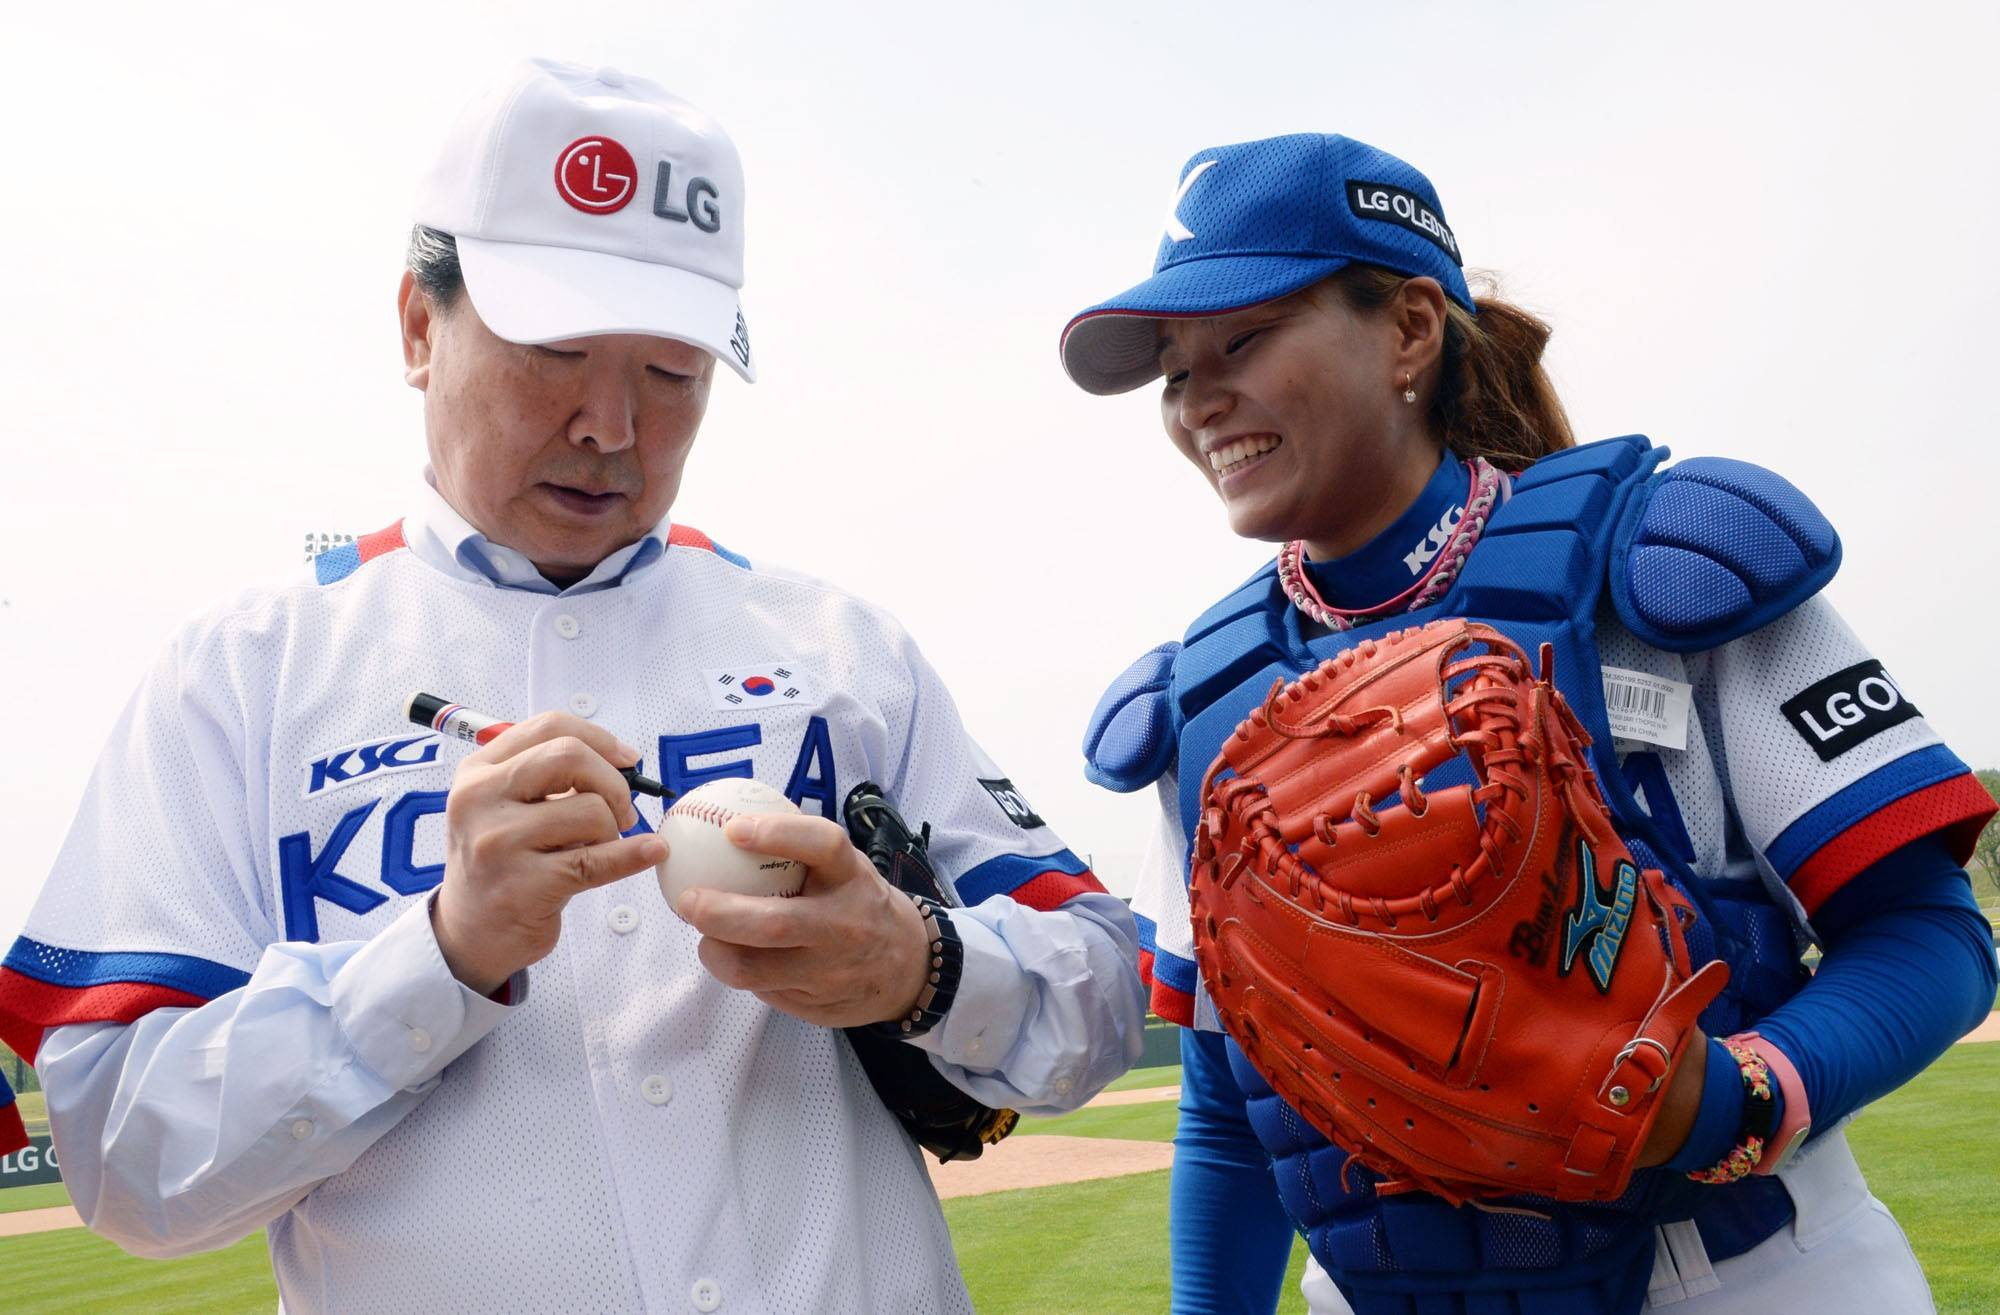 WBSC announces LG as Title Sponsor of Women's Baseball World Cup